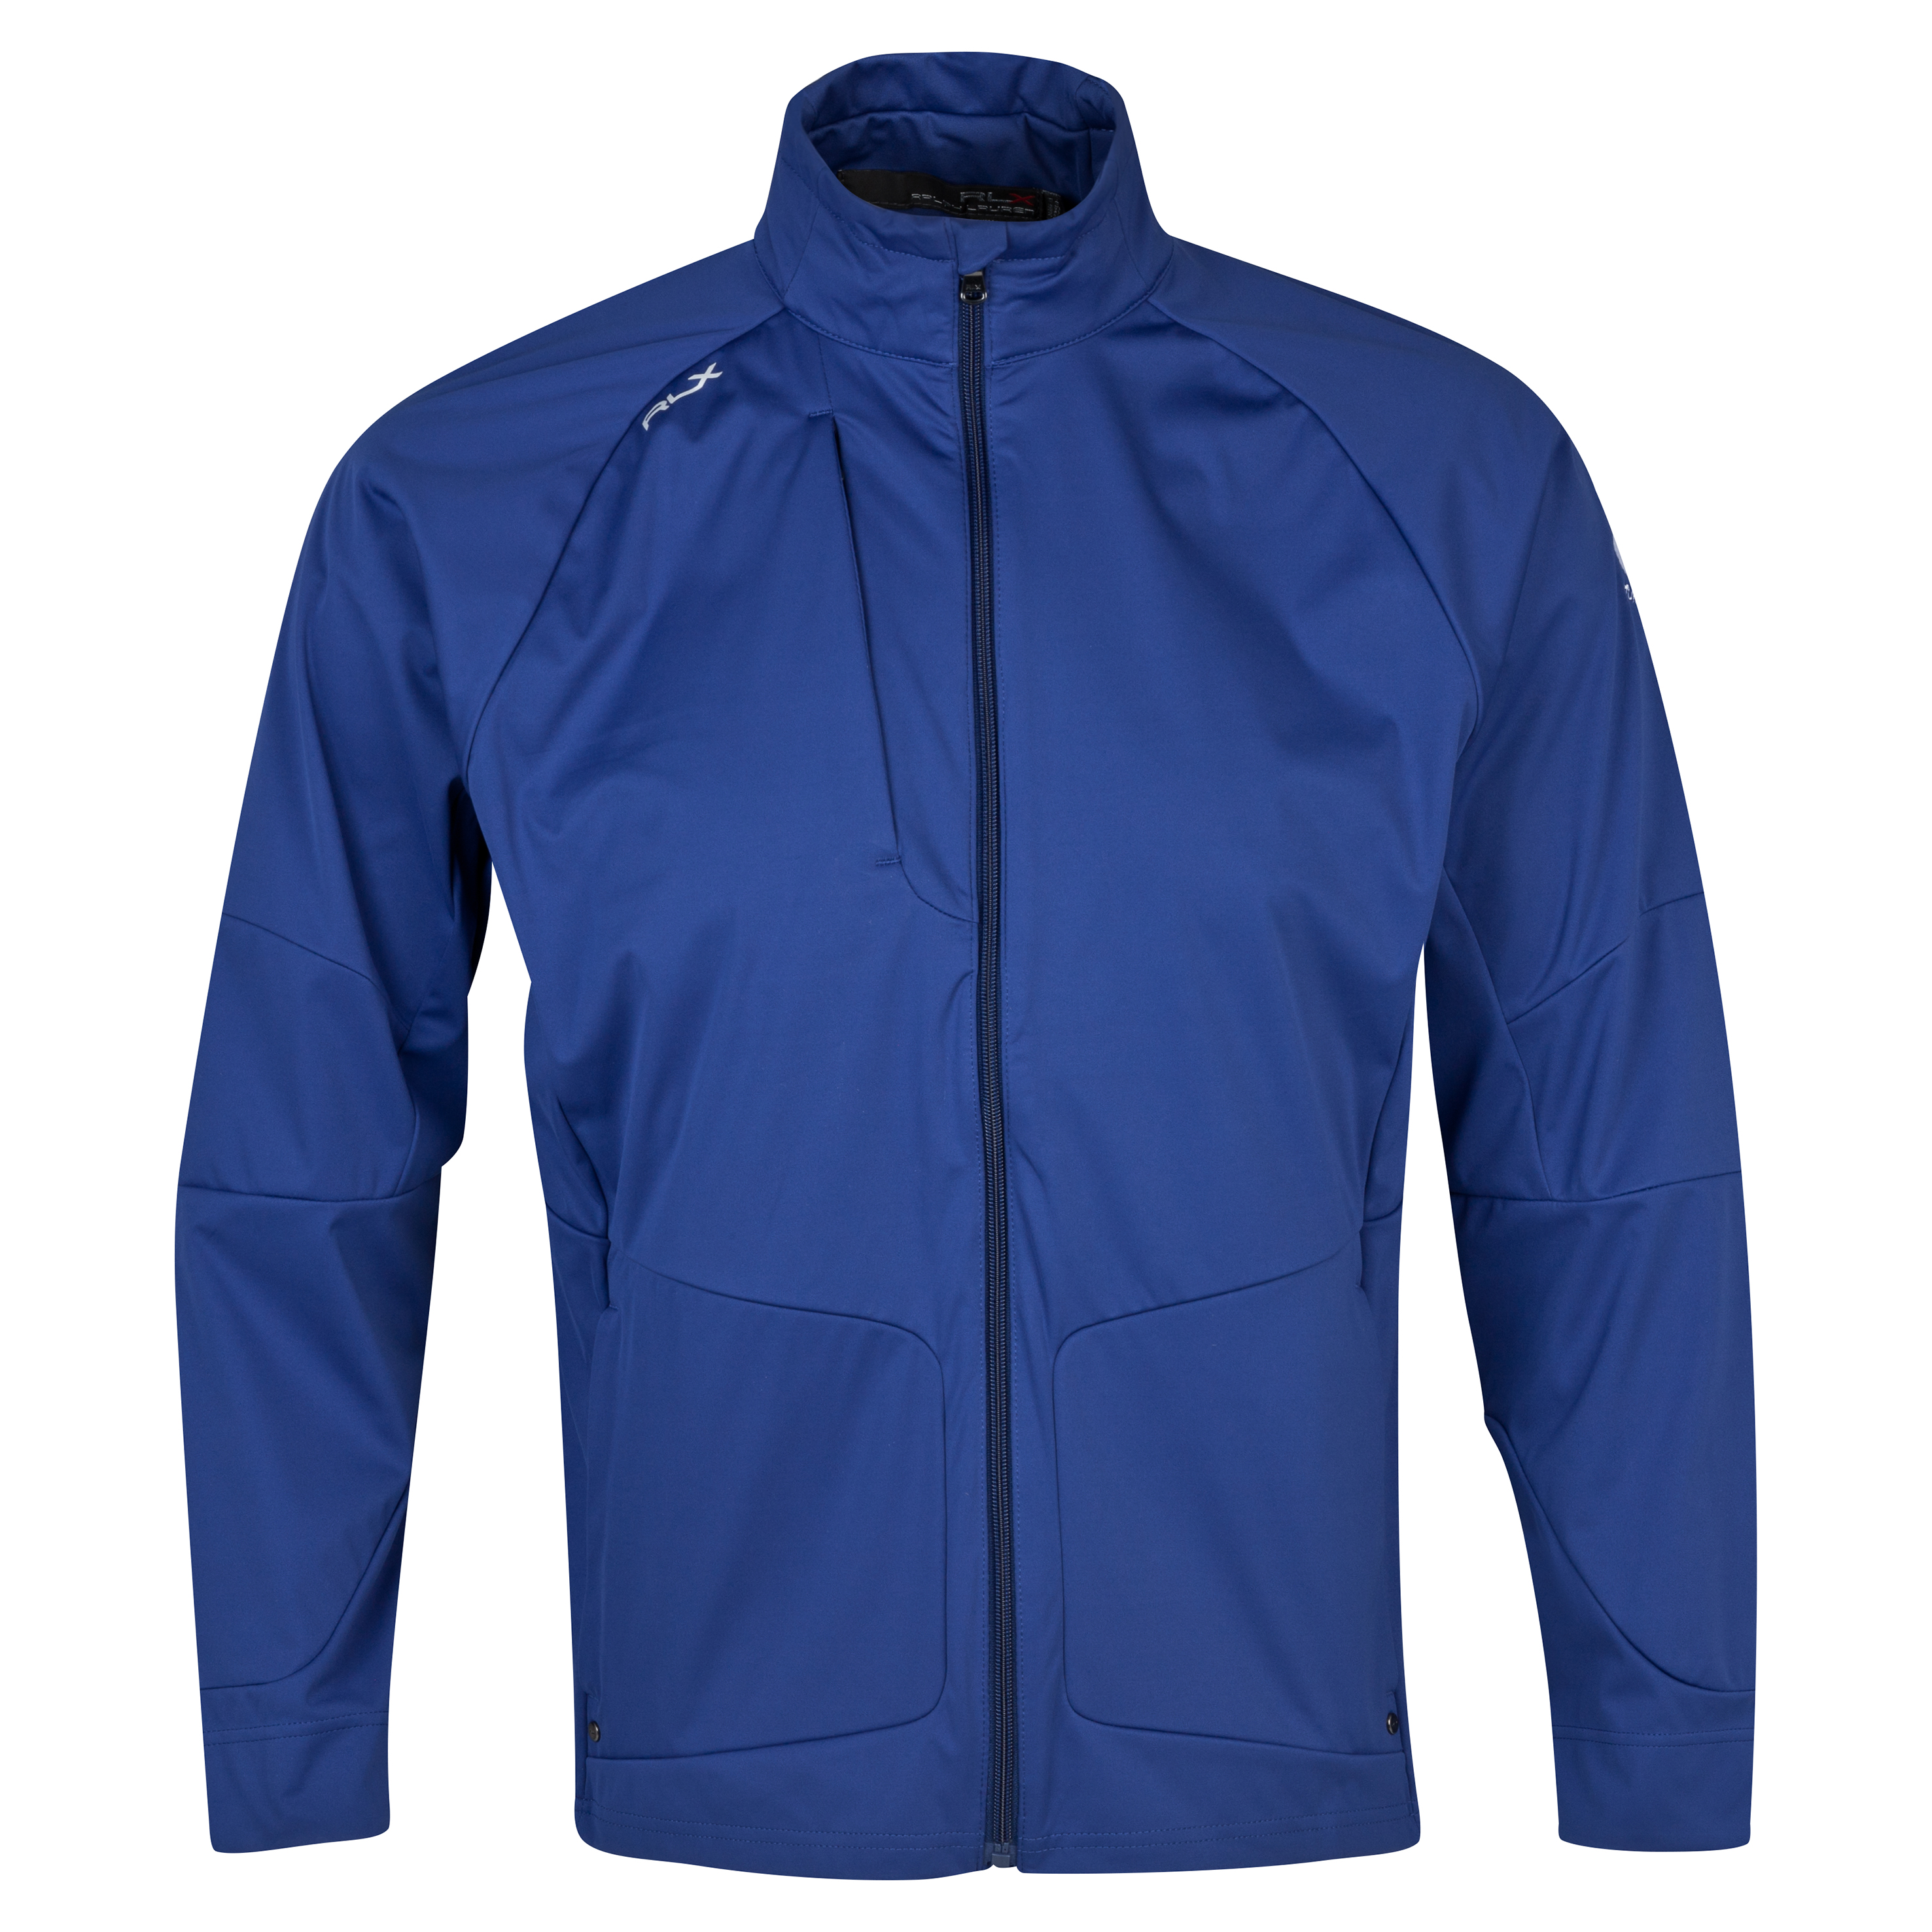 The Open Championship 2013 Muirfield Ralph Lauren RLX Full Zip Drive Jacket